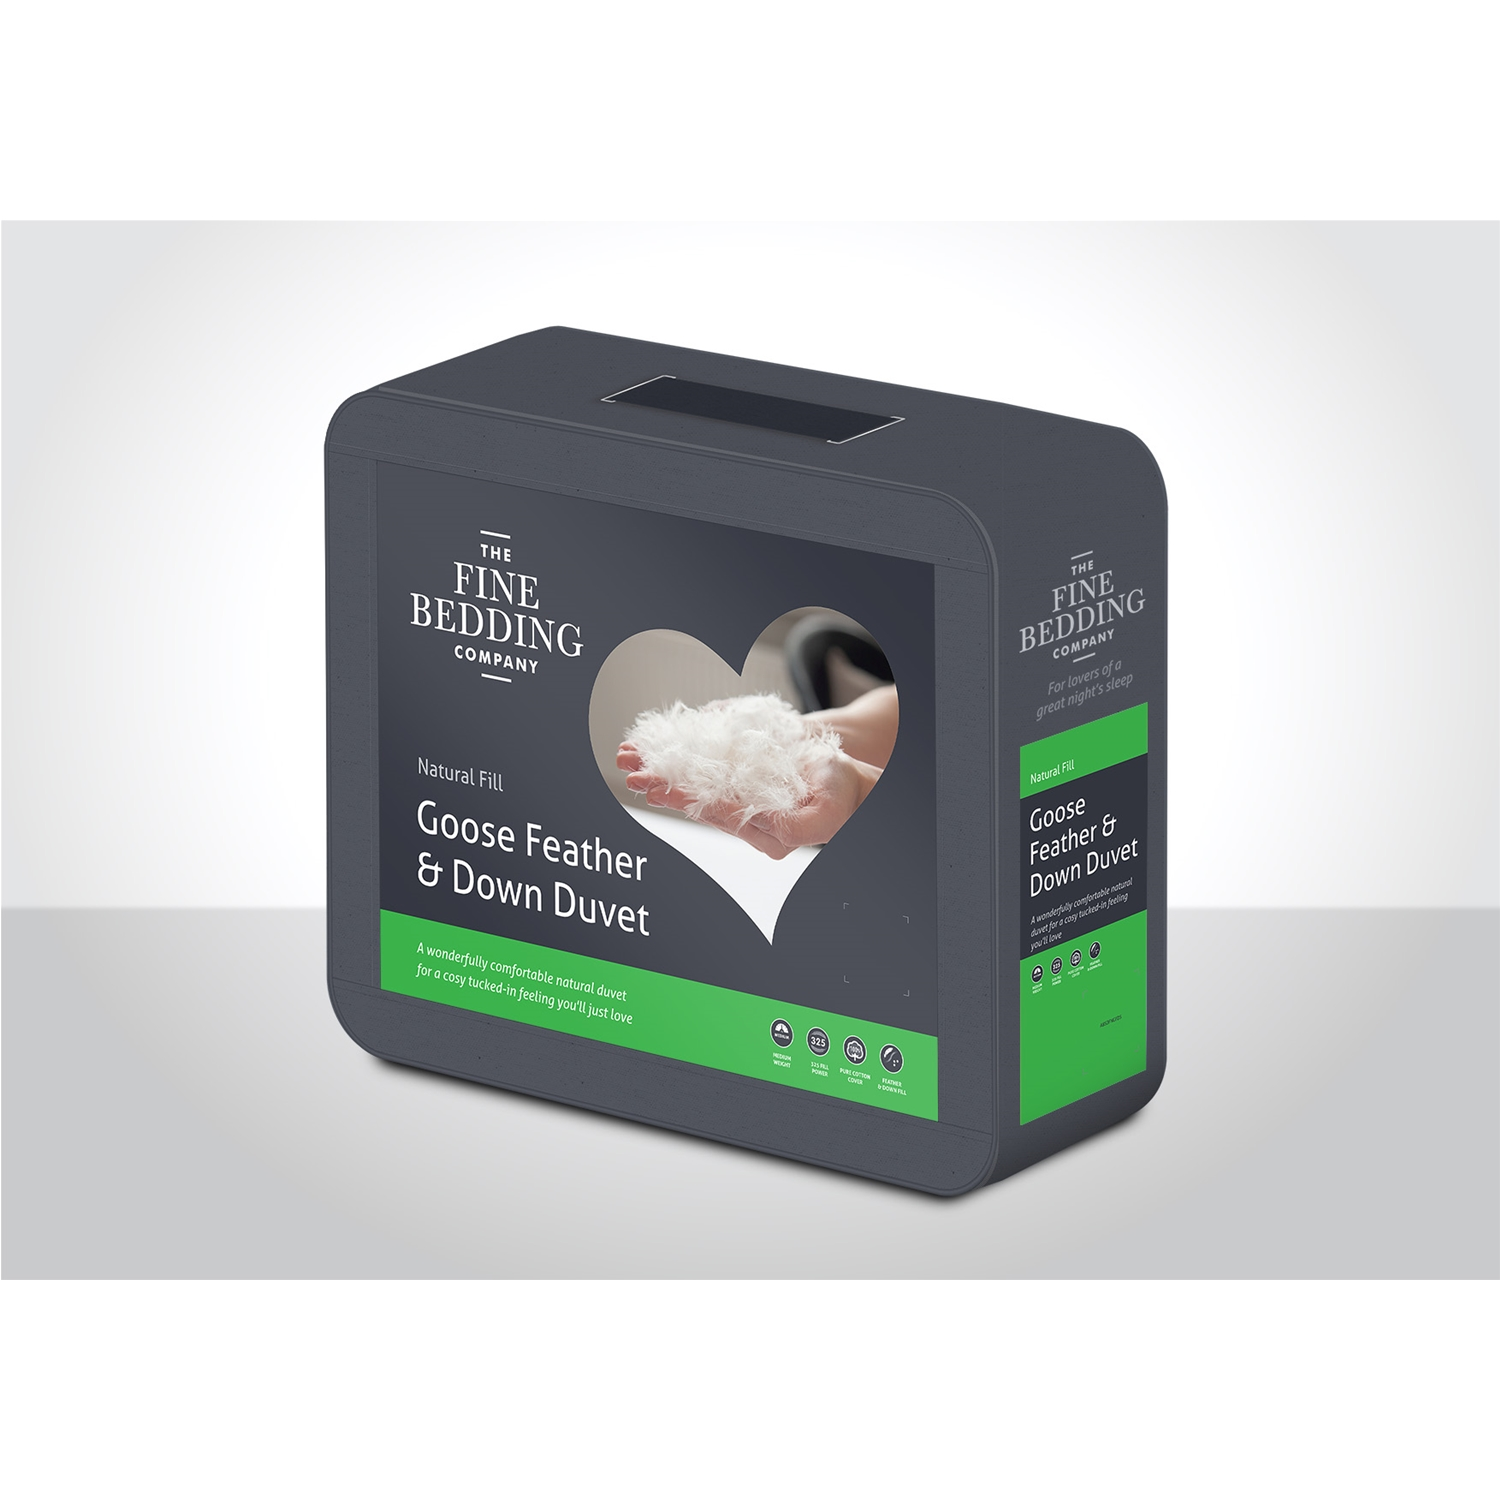 Image of Fine Bedding Company Goose Feather & Down Duvet, 4.5 Tog, Double